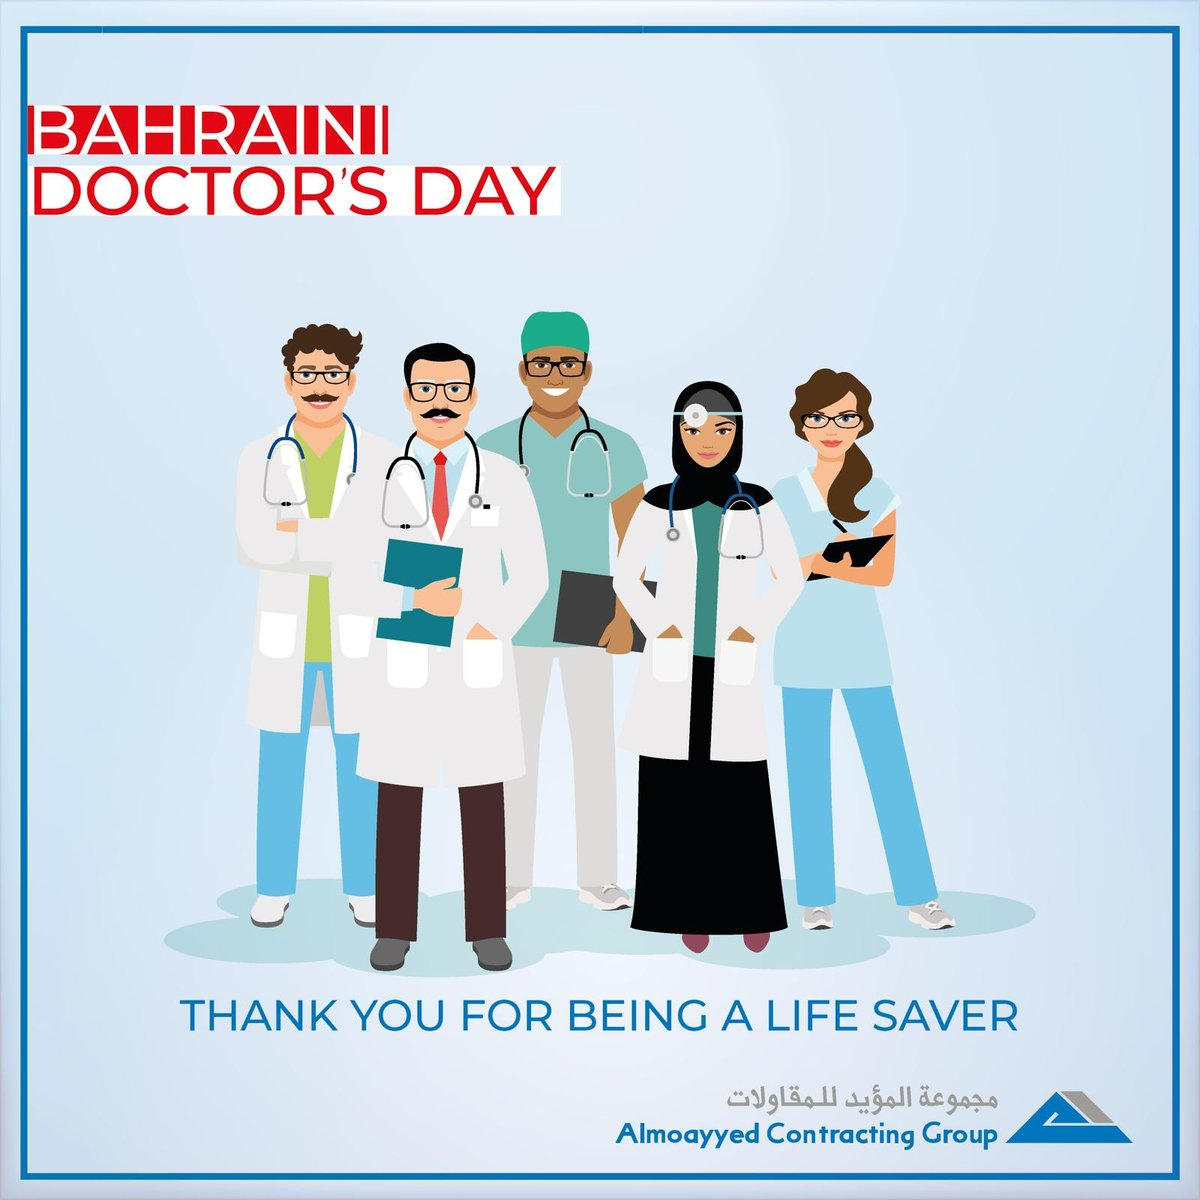 We thank our doctors for all their hard work and support during this difficult time. Your humility, kindness and strength are greatly appreciated.    Happy 🇧🇭 Doctors Day to all our dedicated doctors.    #bahrain #doctorsday #bahraindoctorsday #bahrainidoctorsday https://t.co/HsJOxbXjiO